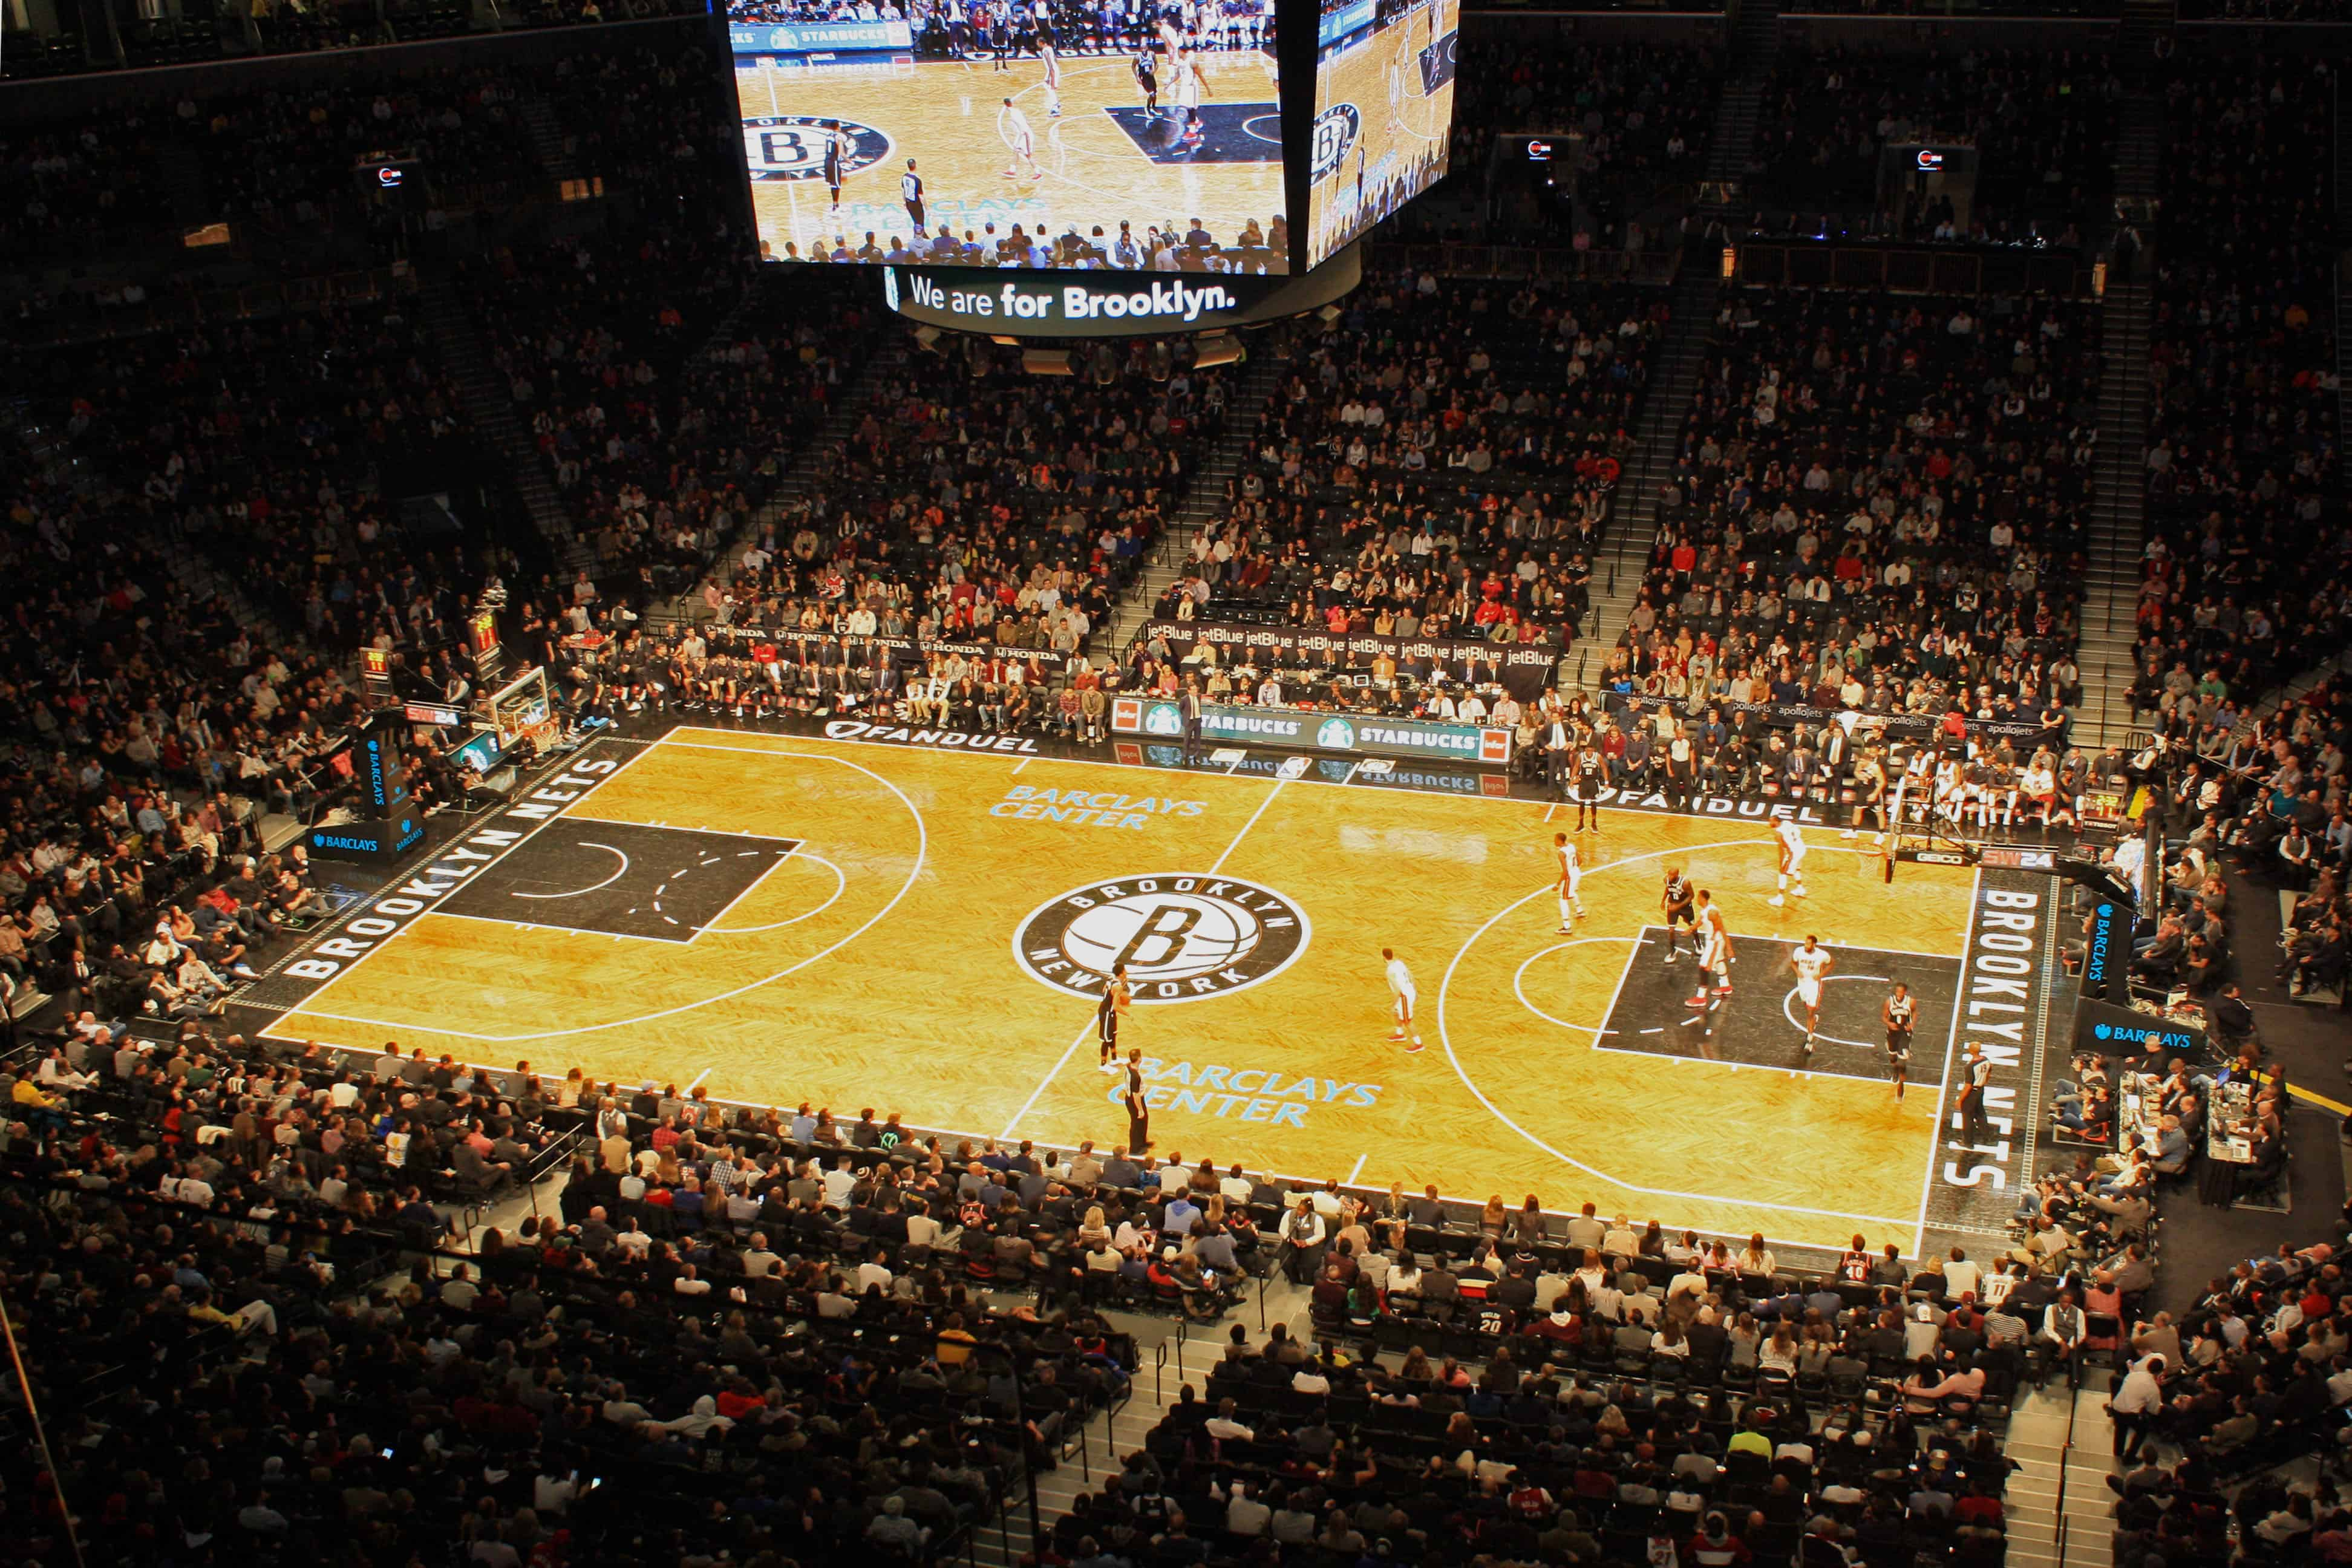 Miami Heat vs Brooklyn Nets at Barclays Centre